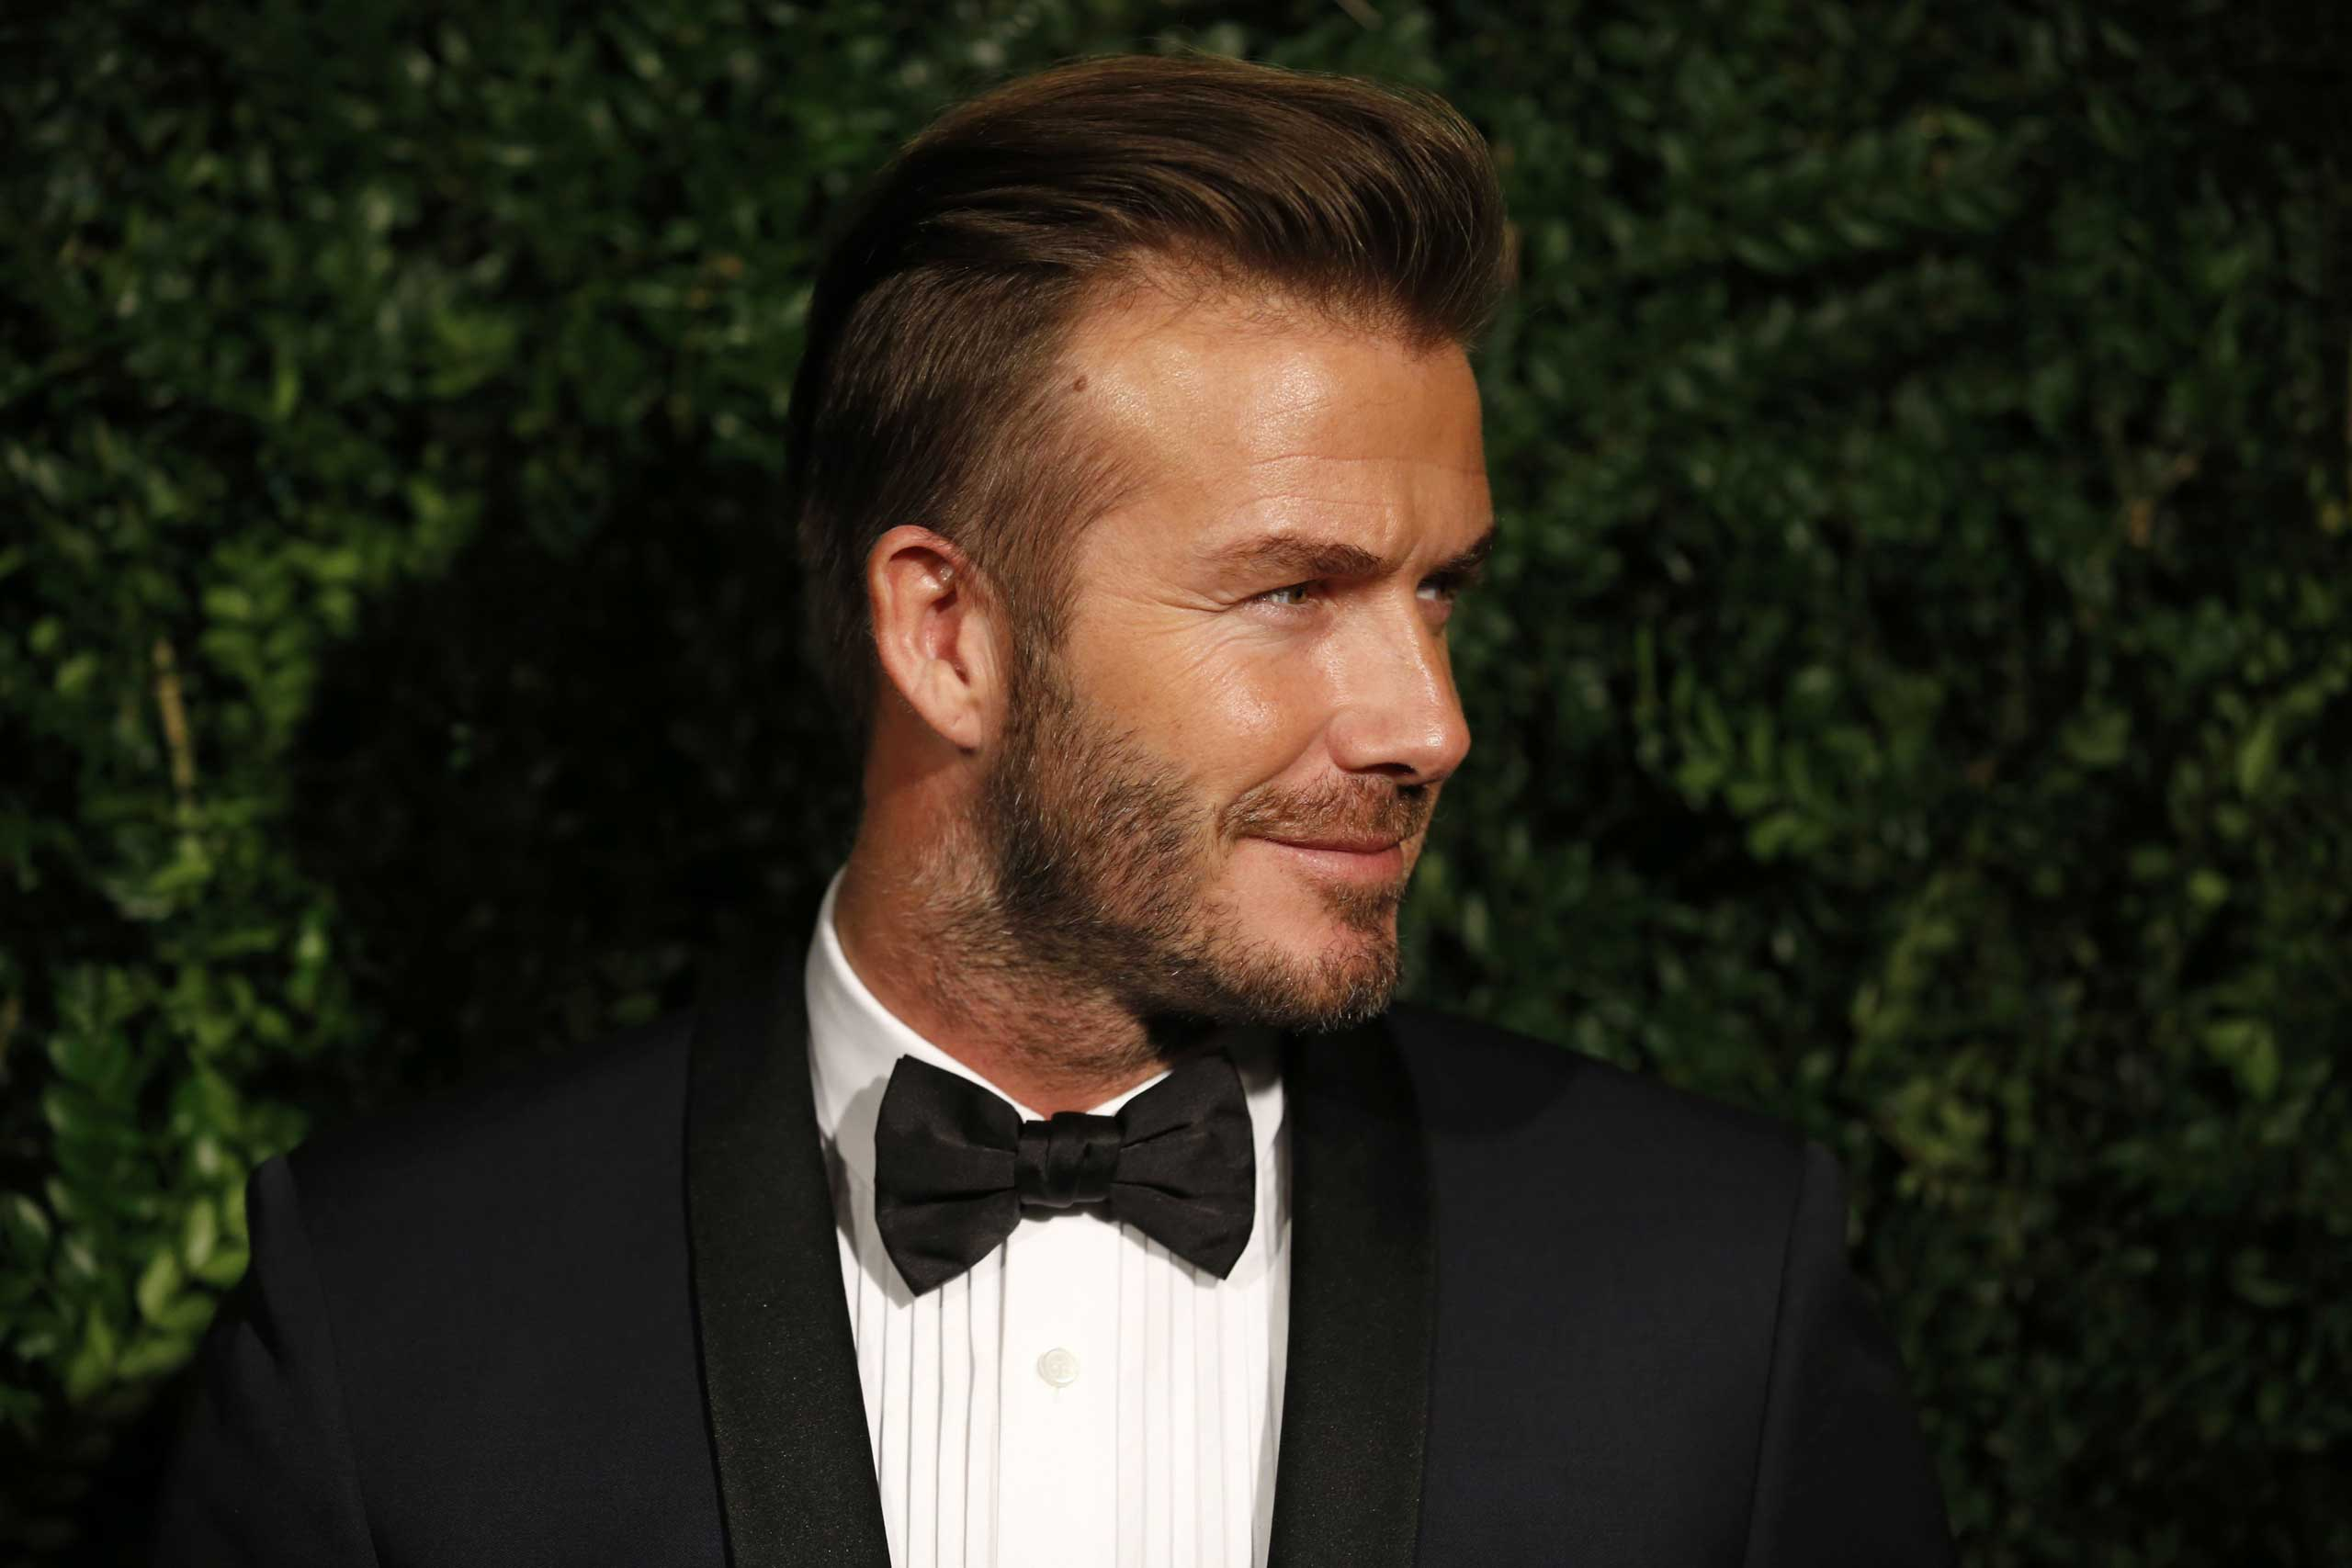 David Beckham poses on the red carpet as he attends the 60th London Evening Standard Theatre Awards 2014 in London on Nov. 30, 2014.